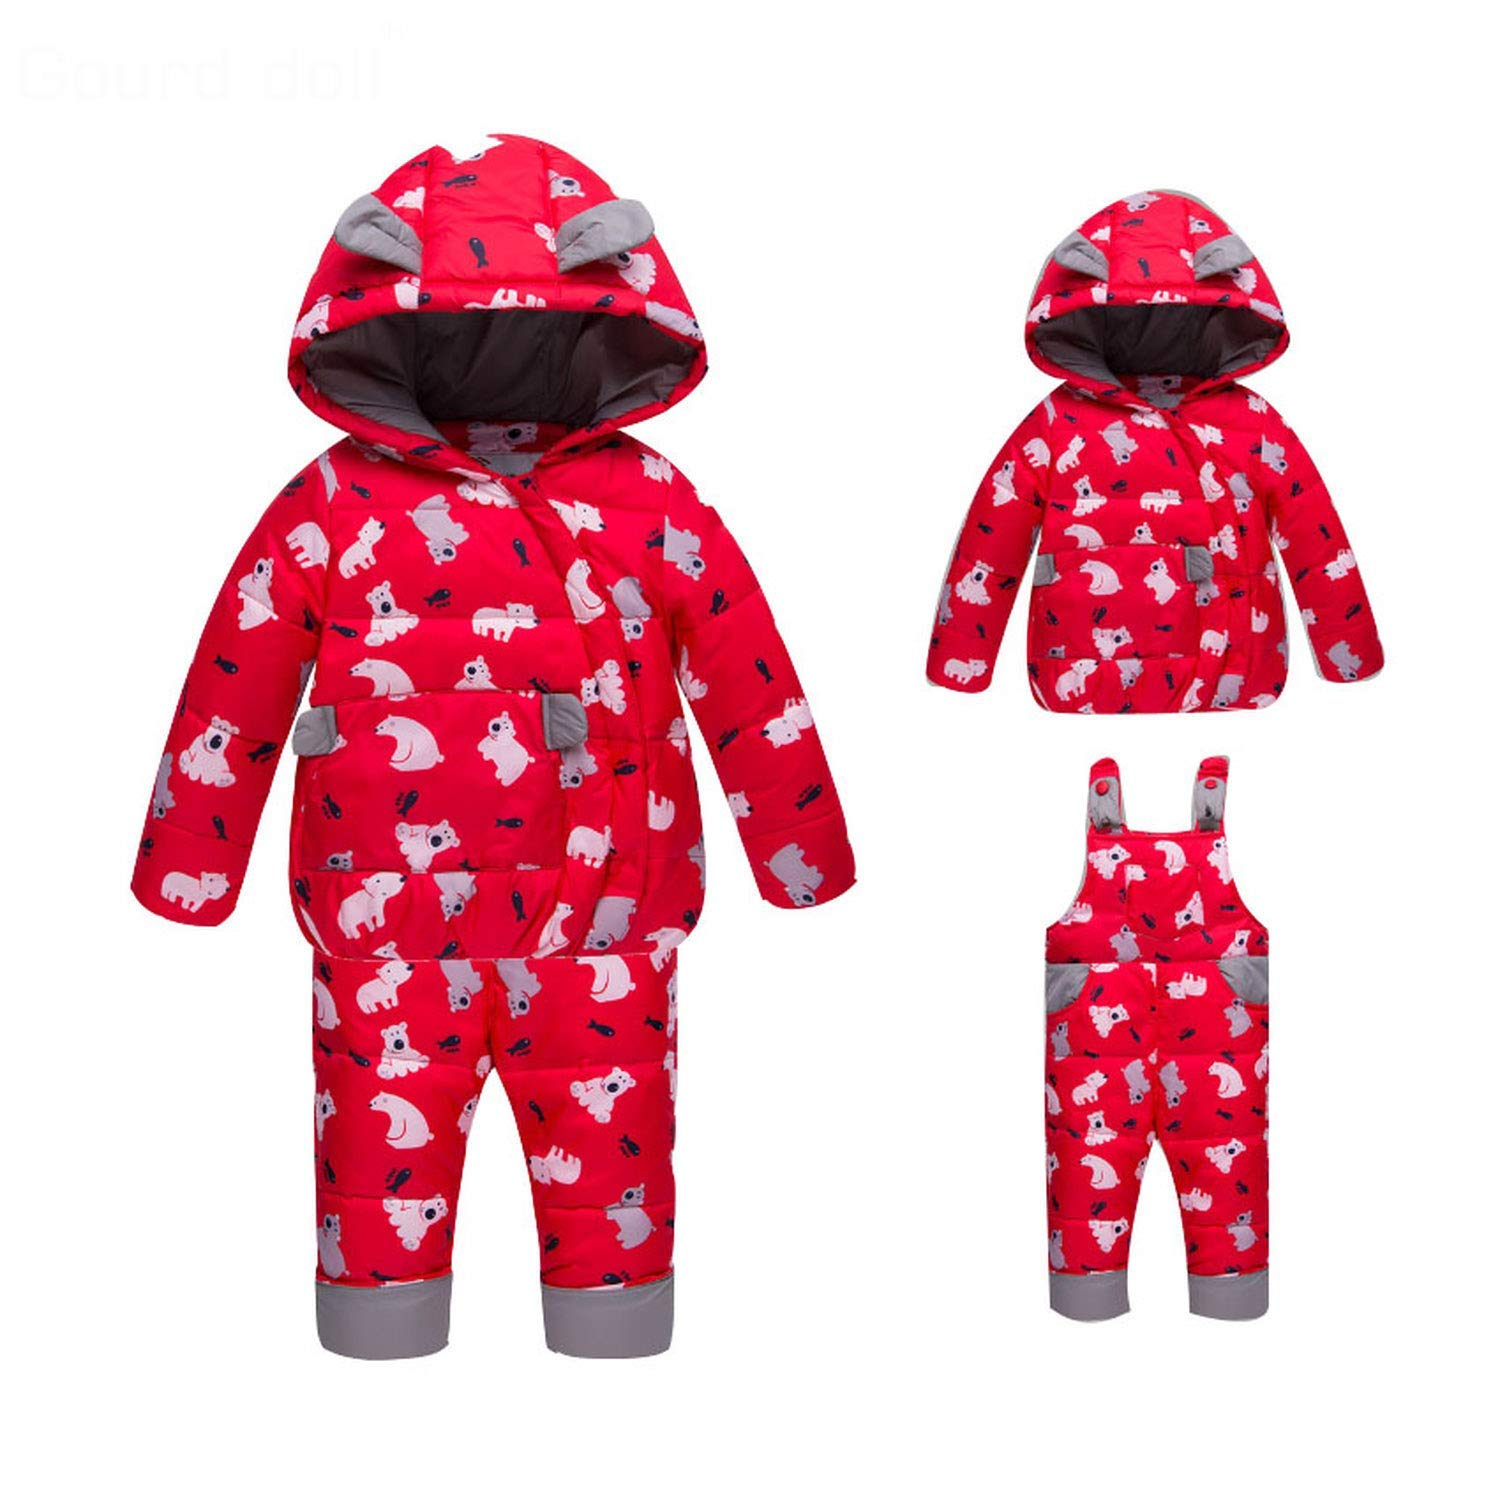 d170cf2ca Get Quotations · Mandaartins Winter Suits for Boys Girls Ski Suit Children  Clothing Set Baby Duck Down Jacket Coat